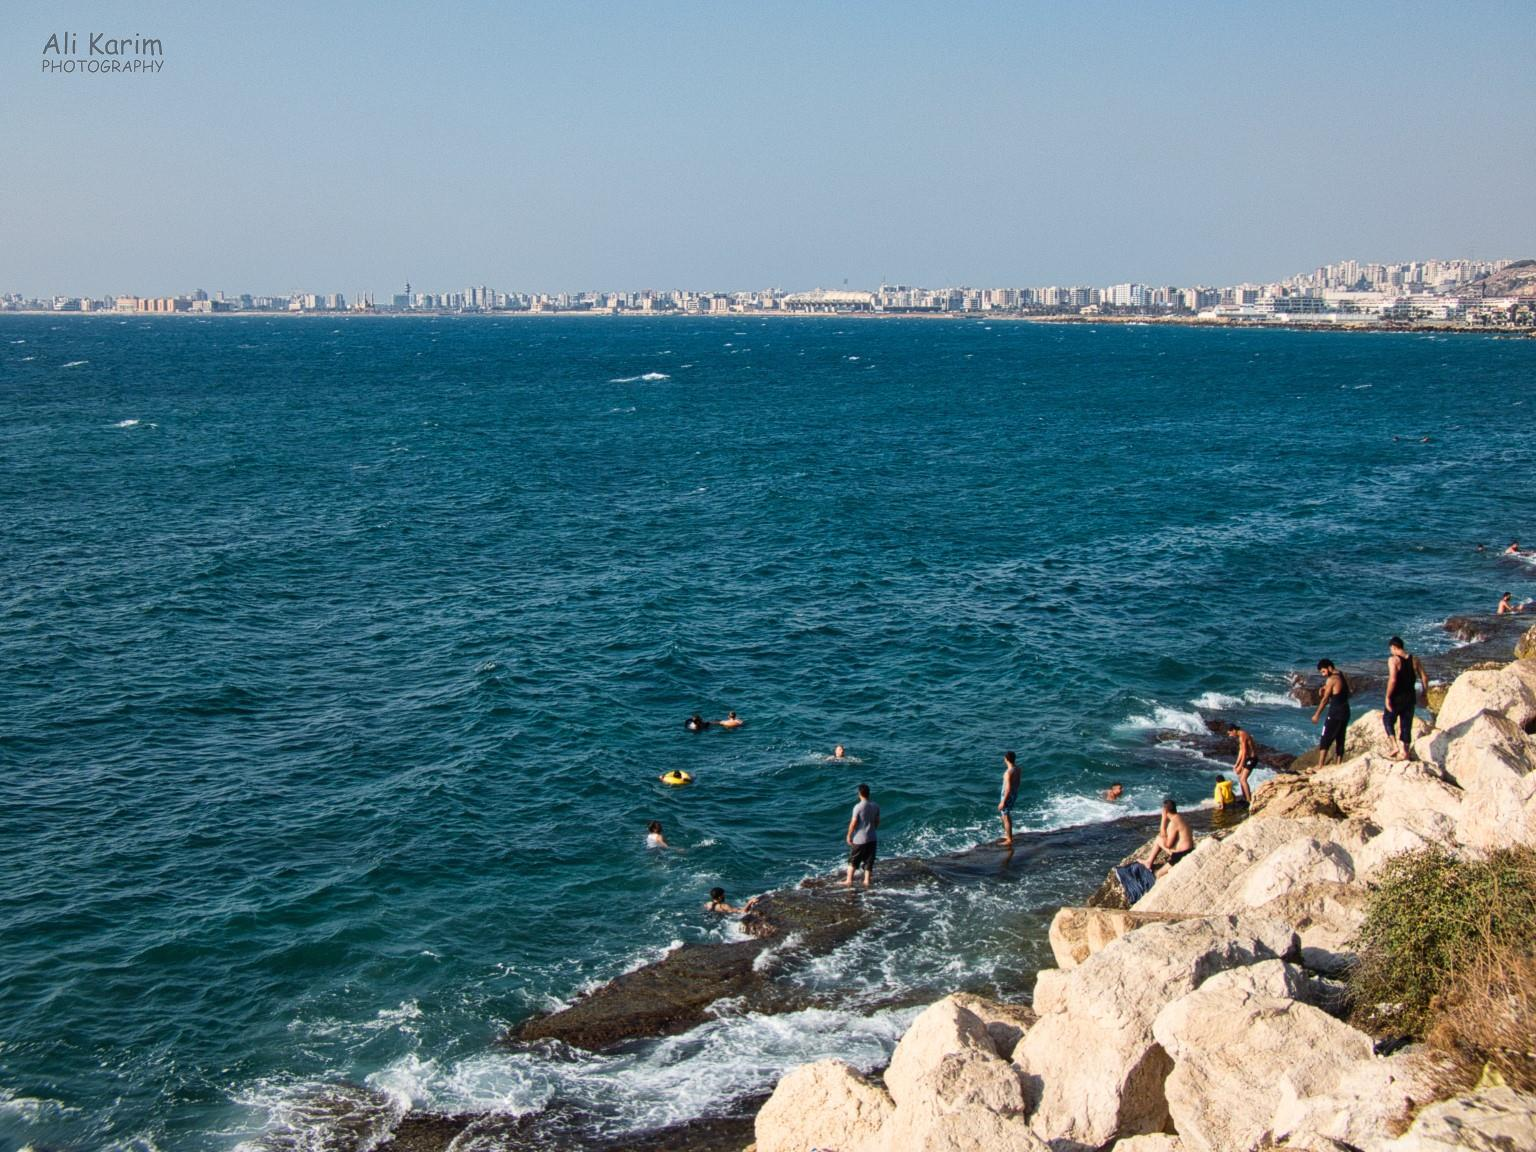 Beirut to Tripoli City of Tripoli, and bathers enjoying the sea from the flat rocks in the water